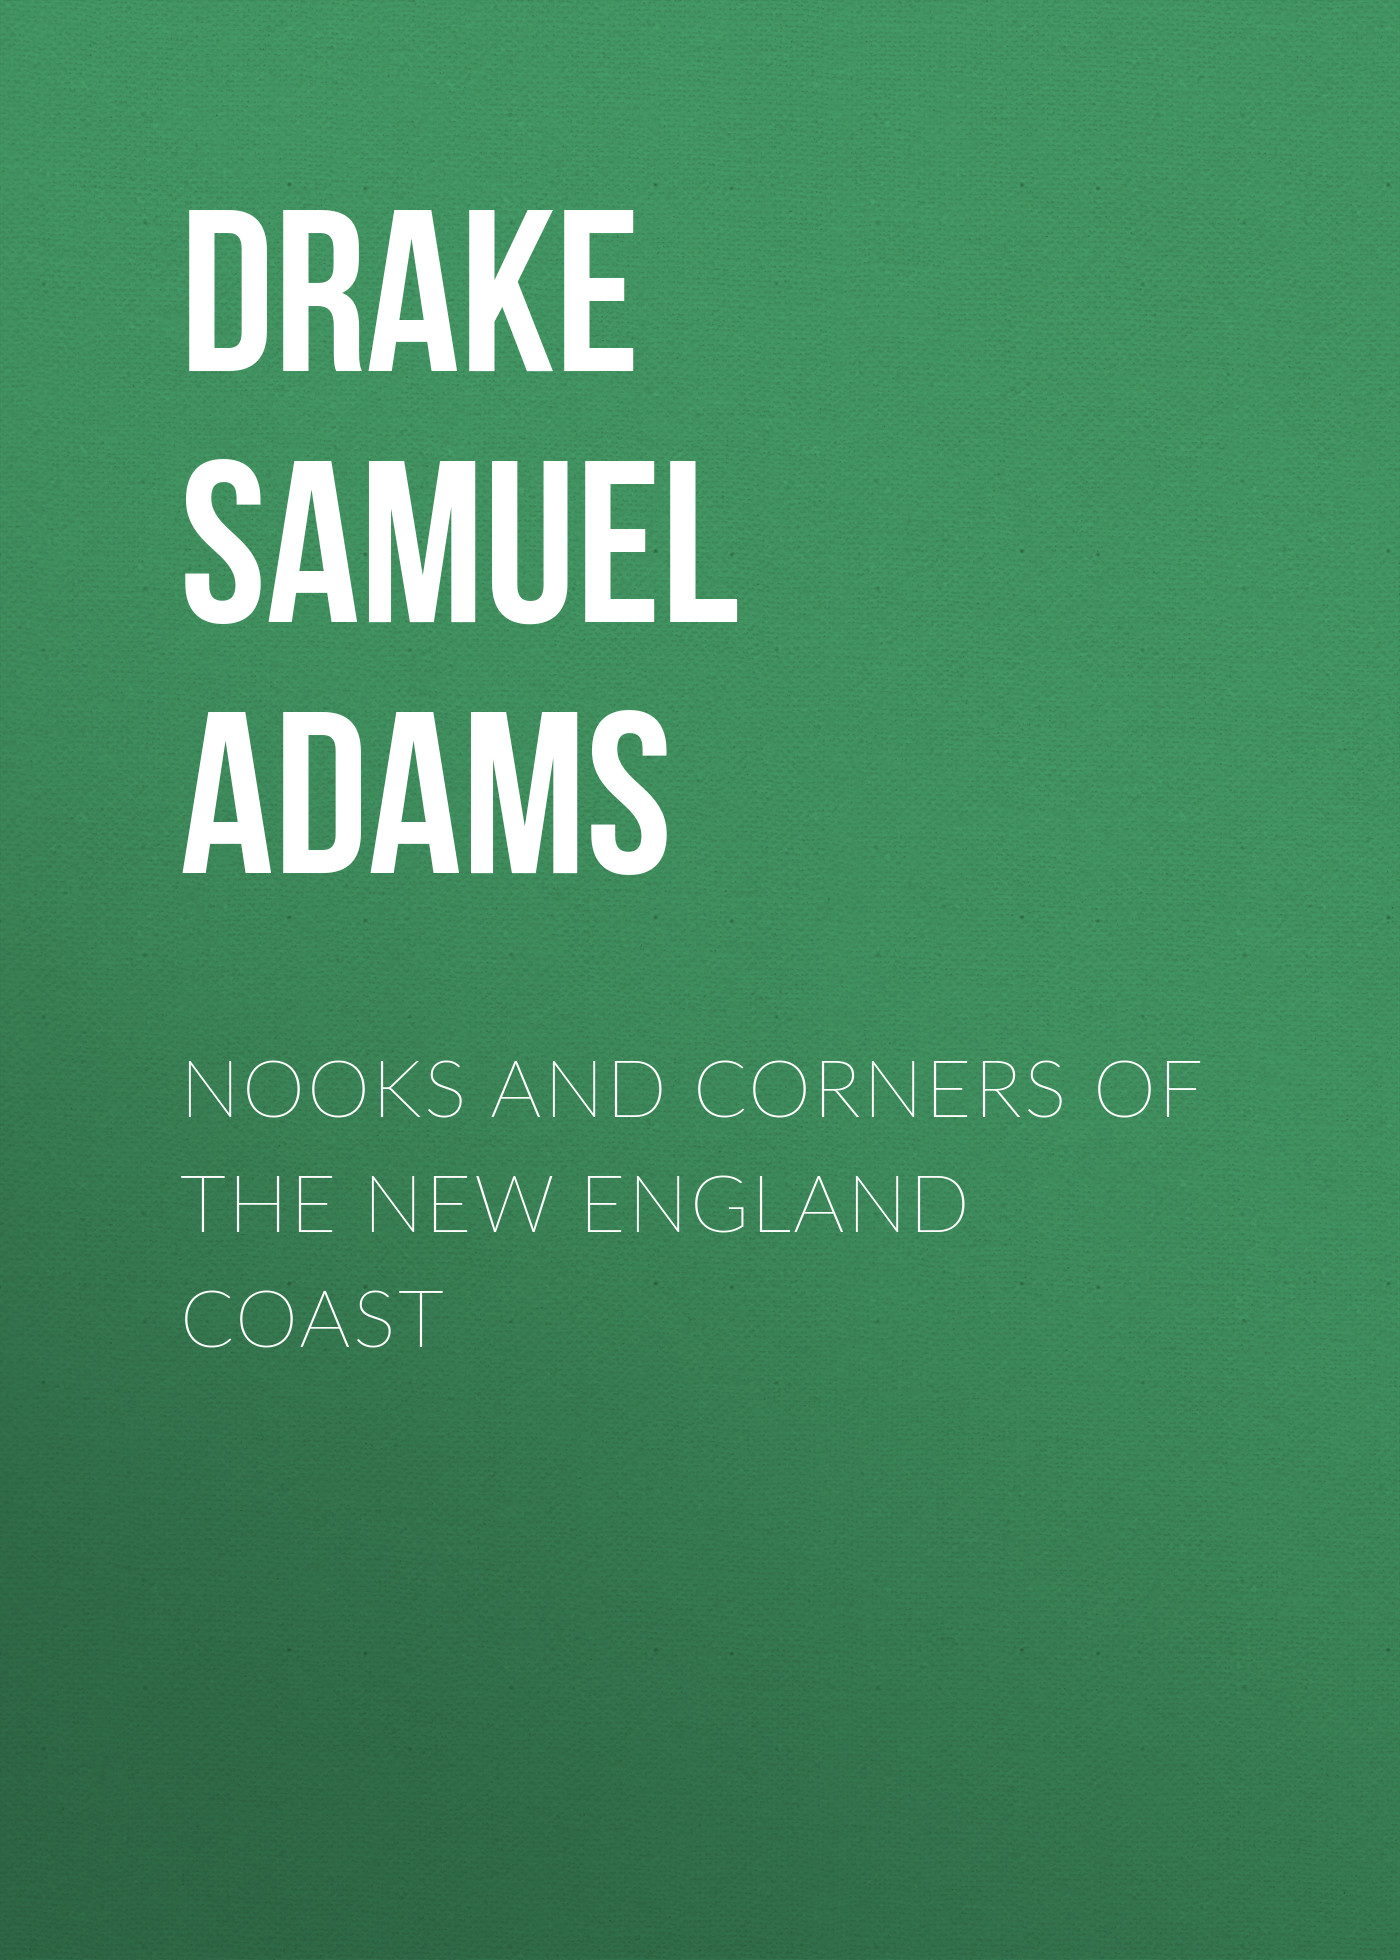 цена на Drake Samuel Adams Nooks and Corners of the New England Coast